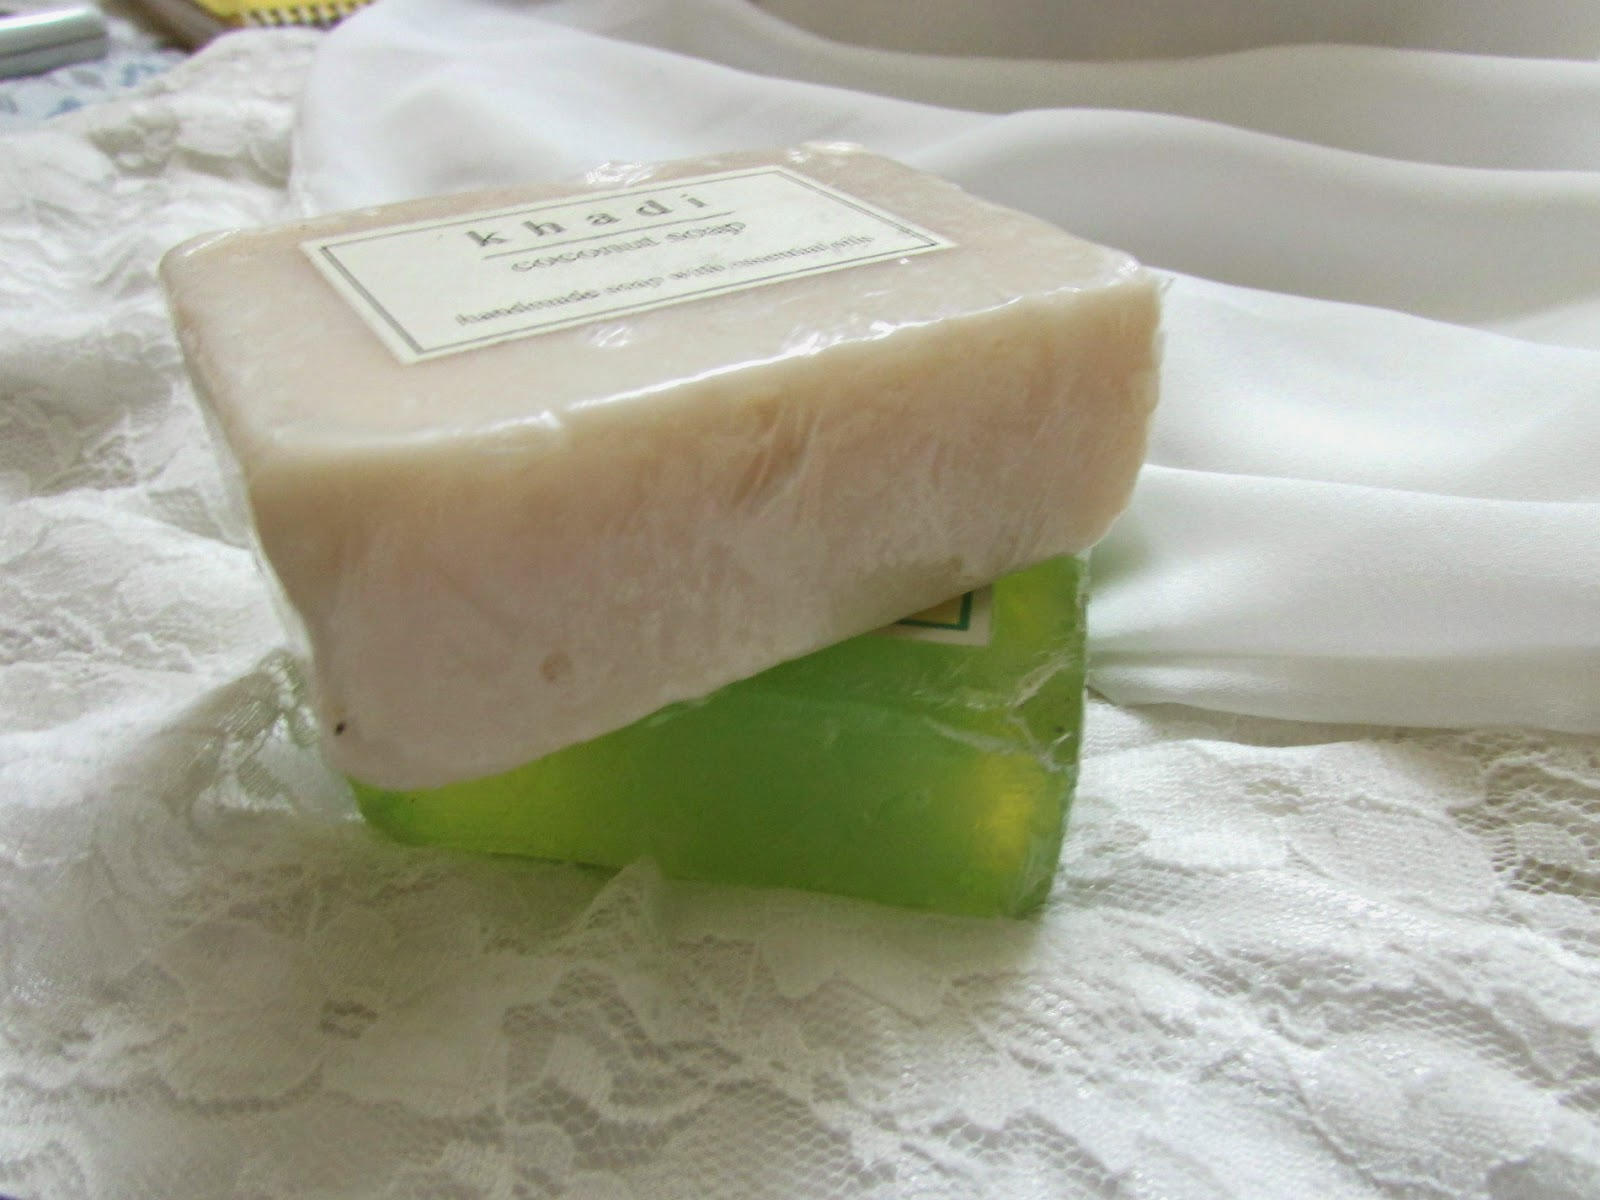 herbal soap, chemical free soap, paraben free soap, all natural soap,herbal body wash, chemical free bodywash, paraben free bodywash, all natural bodywash,herbal scrub, chemical free scrub, paraben free scrub, all natural scrub,herbal lotion, chemical free lotion, paraben free lotion, all natural lotion,herbal body lotion, chemical free body lotion, paraben free body lotion, all natural body lotion,herbal moisturizer, chemical free moisturizer, paraben free moisturizer, all natural moisturizer,herbal face cream, chemical free face cream, paraben free face cream, all natural face cream,herbal rose water, chemical free rose water, paraben free rose water, all natural rose water,herbal aloevera gel, chemical free aloevera gel, paraben free aloevera gel, all natural aloevera gel, herbal oil, chemical free oil, paraben free oil, all natural oil, herbal hair pack, chemical free hair pack, paraben free hair pack, all natural hair pack, herbal anti blemish cream, chemical free anti blemish cream, paraben free anti blemish cream, all natural anti blemish cream, khadi herbal products, khadi chemical free products ,khadi paraben free products, khadi all natural products,herbal products online, chemical free products  online , paraben free products online, all natural products online,cheap herbal products, cheap chemical free products ,cheap paraben free products,cheap all natural products, khadi herbal soap, khadi chemical free soap,khadi  paraben free soap,khadi  all natural soap,khadi herbal body wash,khadi  chemical free bodywash,khadi  paraben free bodywash, khadi all natural bodywash, khadi herbal scrub,khadi  chemical free scrub,khadi  paraben free scrub,khadi  all natural scrub,khadi herbal lotion,khadi  chemical free lotion, khadi paraben free lotion, khadi all natural lotion,khadi herbal body lotion, khadi chemical free body lotion, khadi paraben free body lotion, khadi all natural body lotion,khadi herbal moisturizer, khadi chemical free moisturizer, khadi paraben free moisturizer,khadi  all natural moisturizer,khadi herbal face cream,khadi  chemical free face cream,khadi  paraben free face cream, khadi all natural face cream,khadi herbal rose water,khadi  chemical free rose water, khadi paraben free rose water, khadi all natural rose waterkhadi ,herbal aloevera gel, khadi chemical free aloevera gel,khadi  paraben free aloevera gel,khadi  all natural aloevera gel,khadi  herbal oil, chemical free oil, khadi paraben free oil, khadi all natural oil, khadi herbal hair pack, khadi chemical free hair pack,khadi  paraben free hair pack, khadi all natural hair pack, khadi herbal anti blemish cream, khadi chemical free anti blemish cream, khadi paraben free anti blemish cream, khadi all natural anti blemish cream, khadi haul , huge khadi haul, khadi products online , khadi products prices